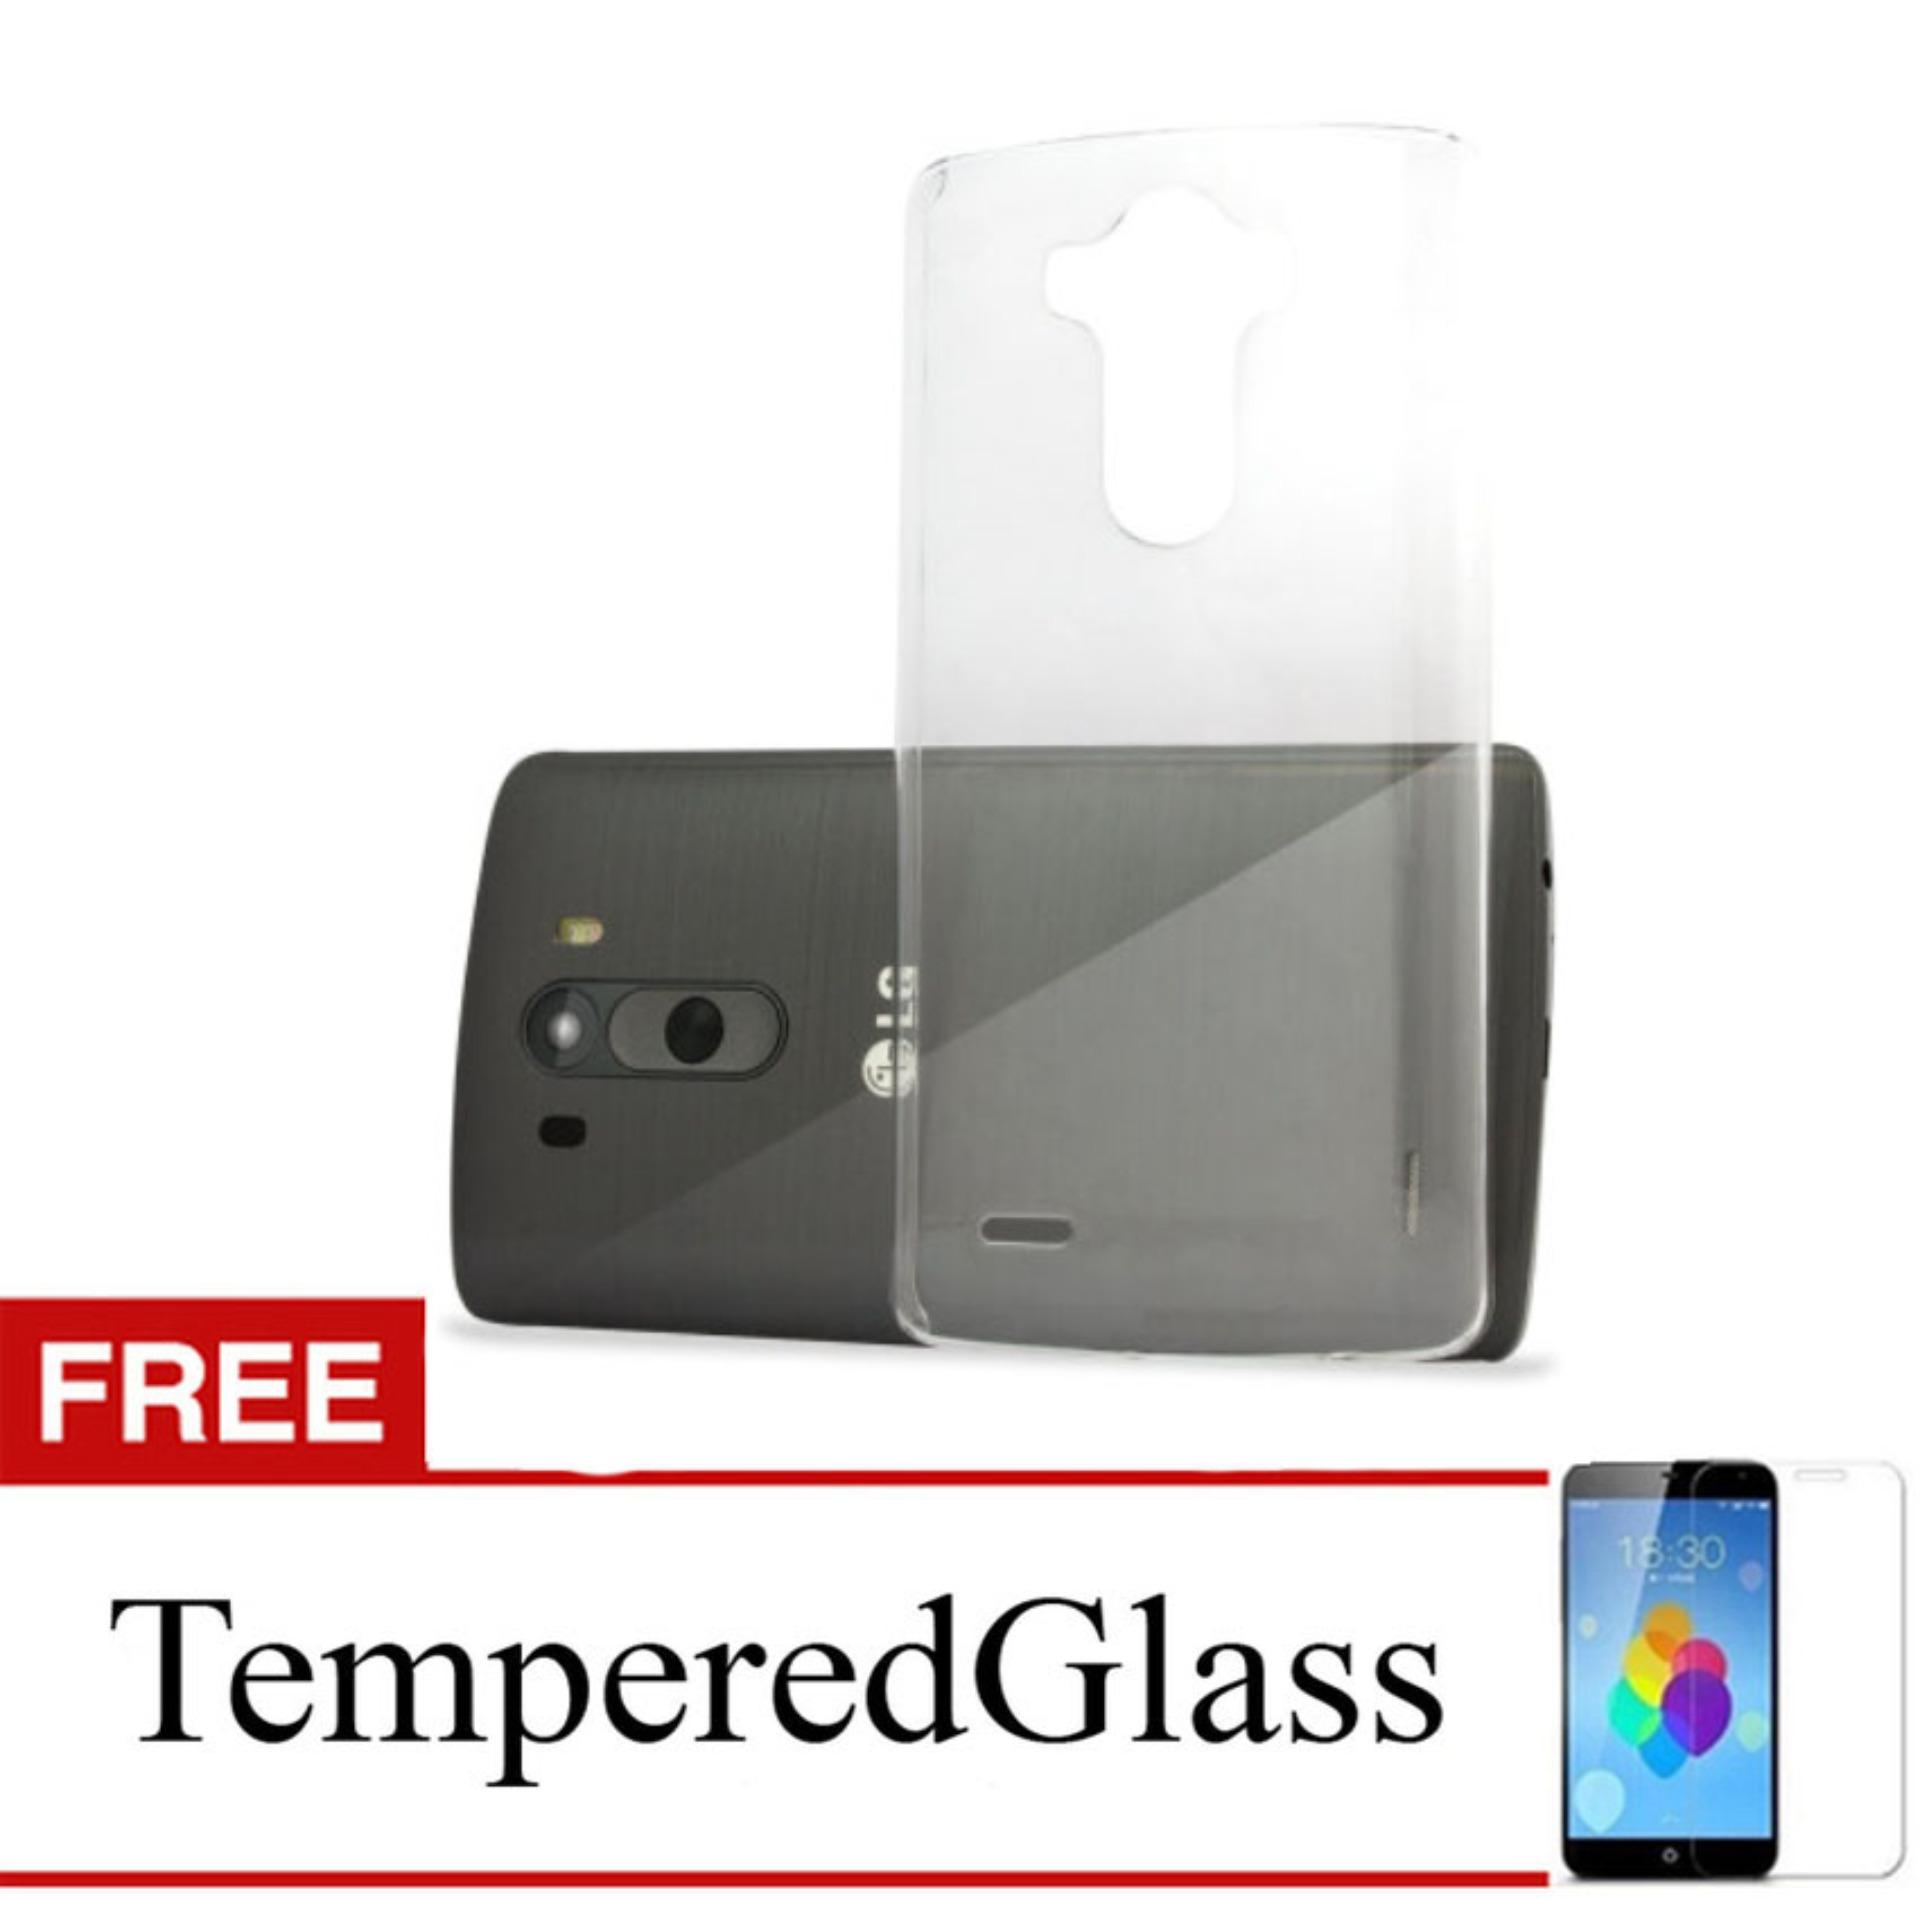 Case for LG K10 2017 / M250 - Clear + Gratis Tempered Glass - Ultra Thin Soft Case